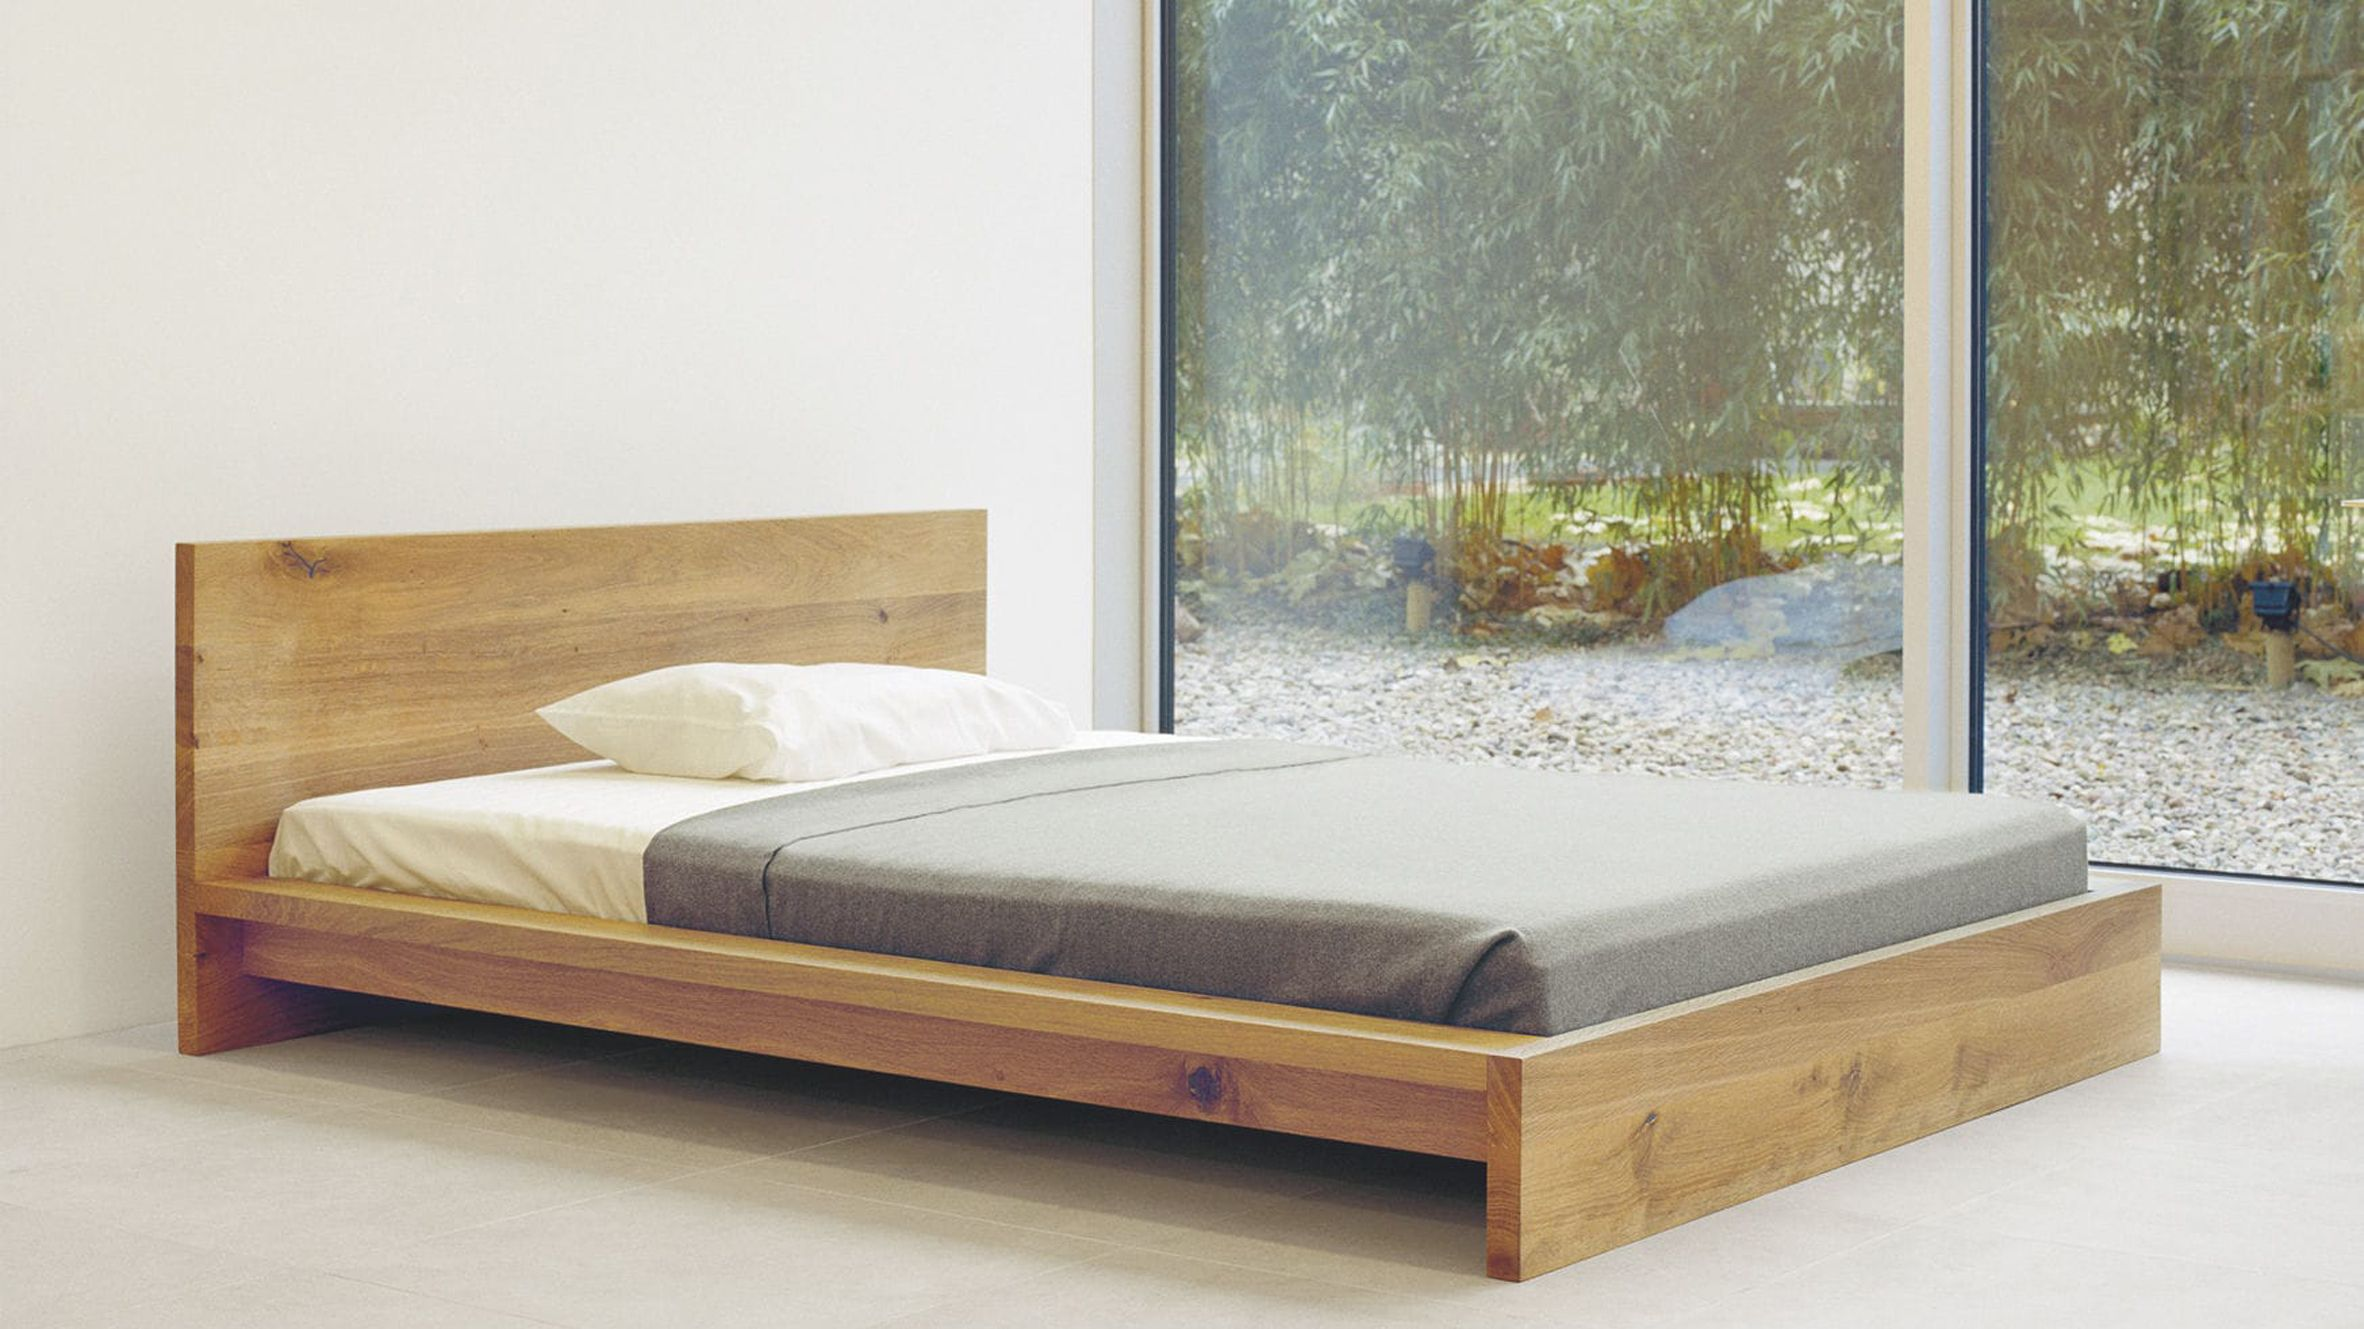 e15 is taking IKEA to Germany\'s highest court over a bed they claims ...